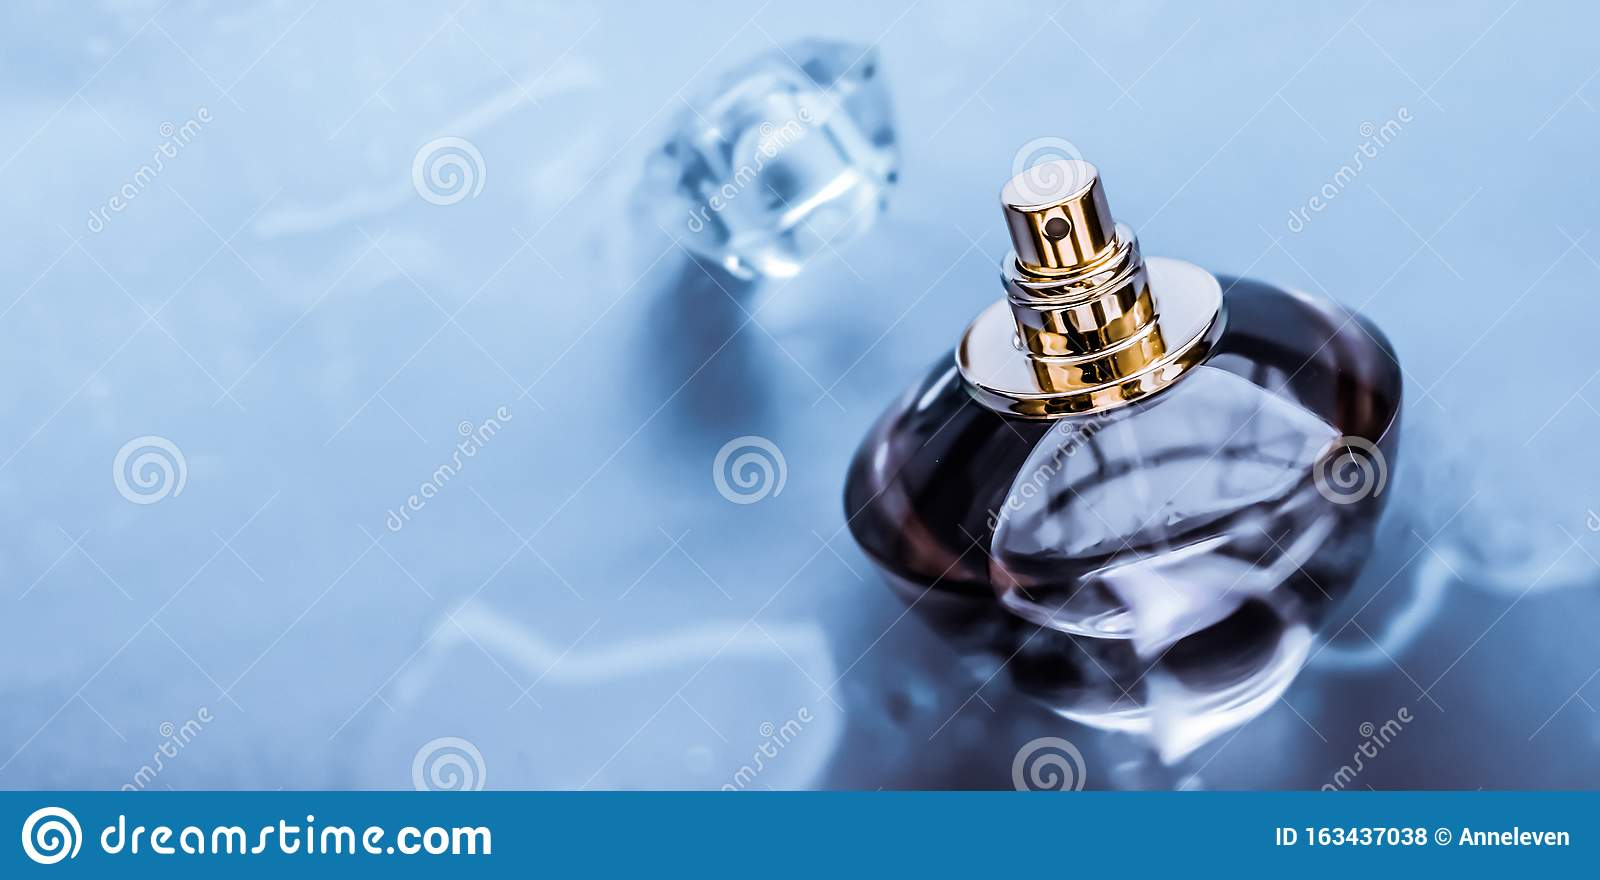 Perfume bottle under blue water, fresh sea coastal scent as glamour fragrance and eau de parfum product as holiday gift, luxury